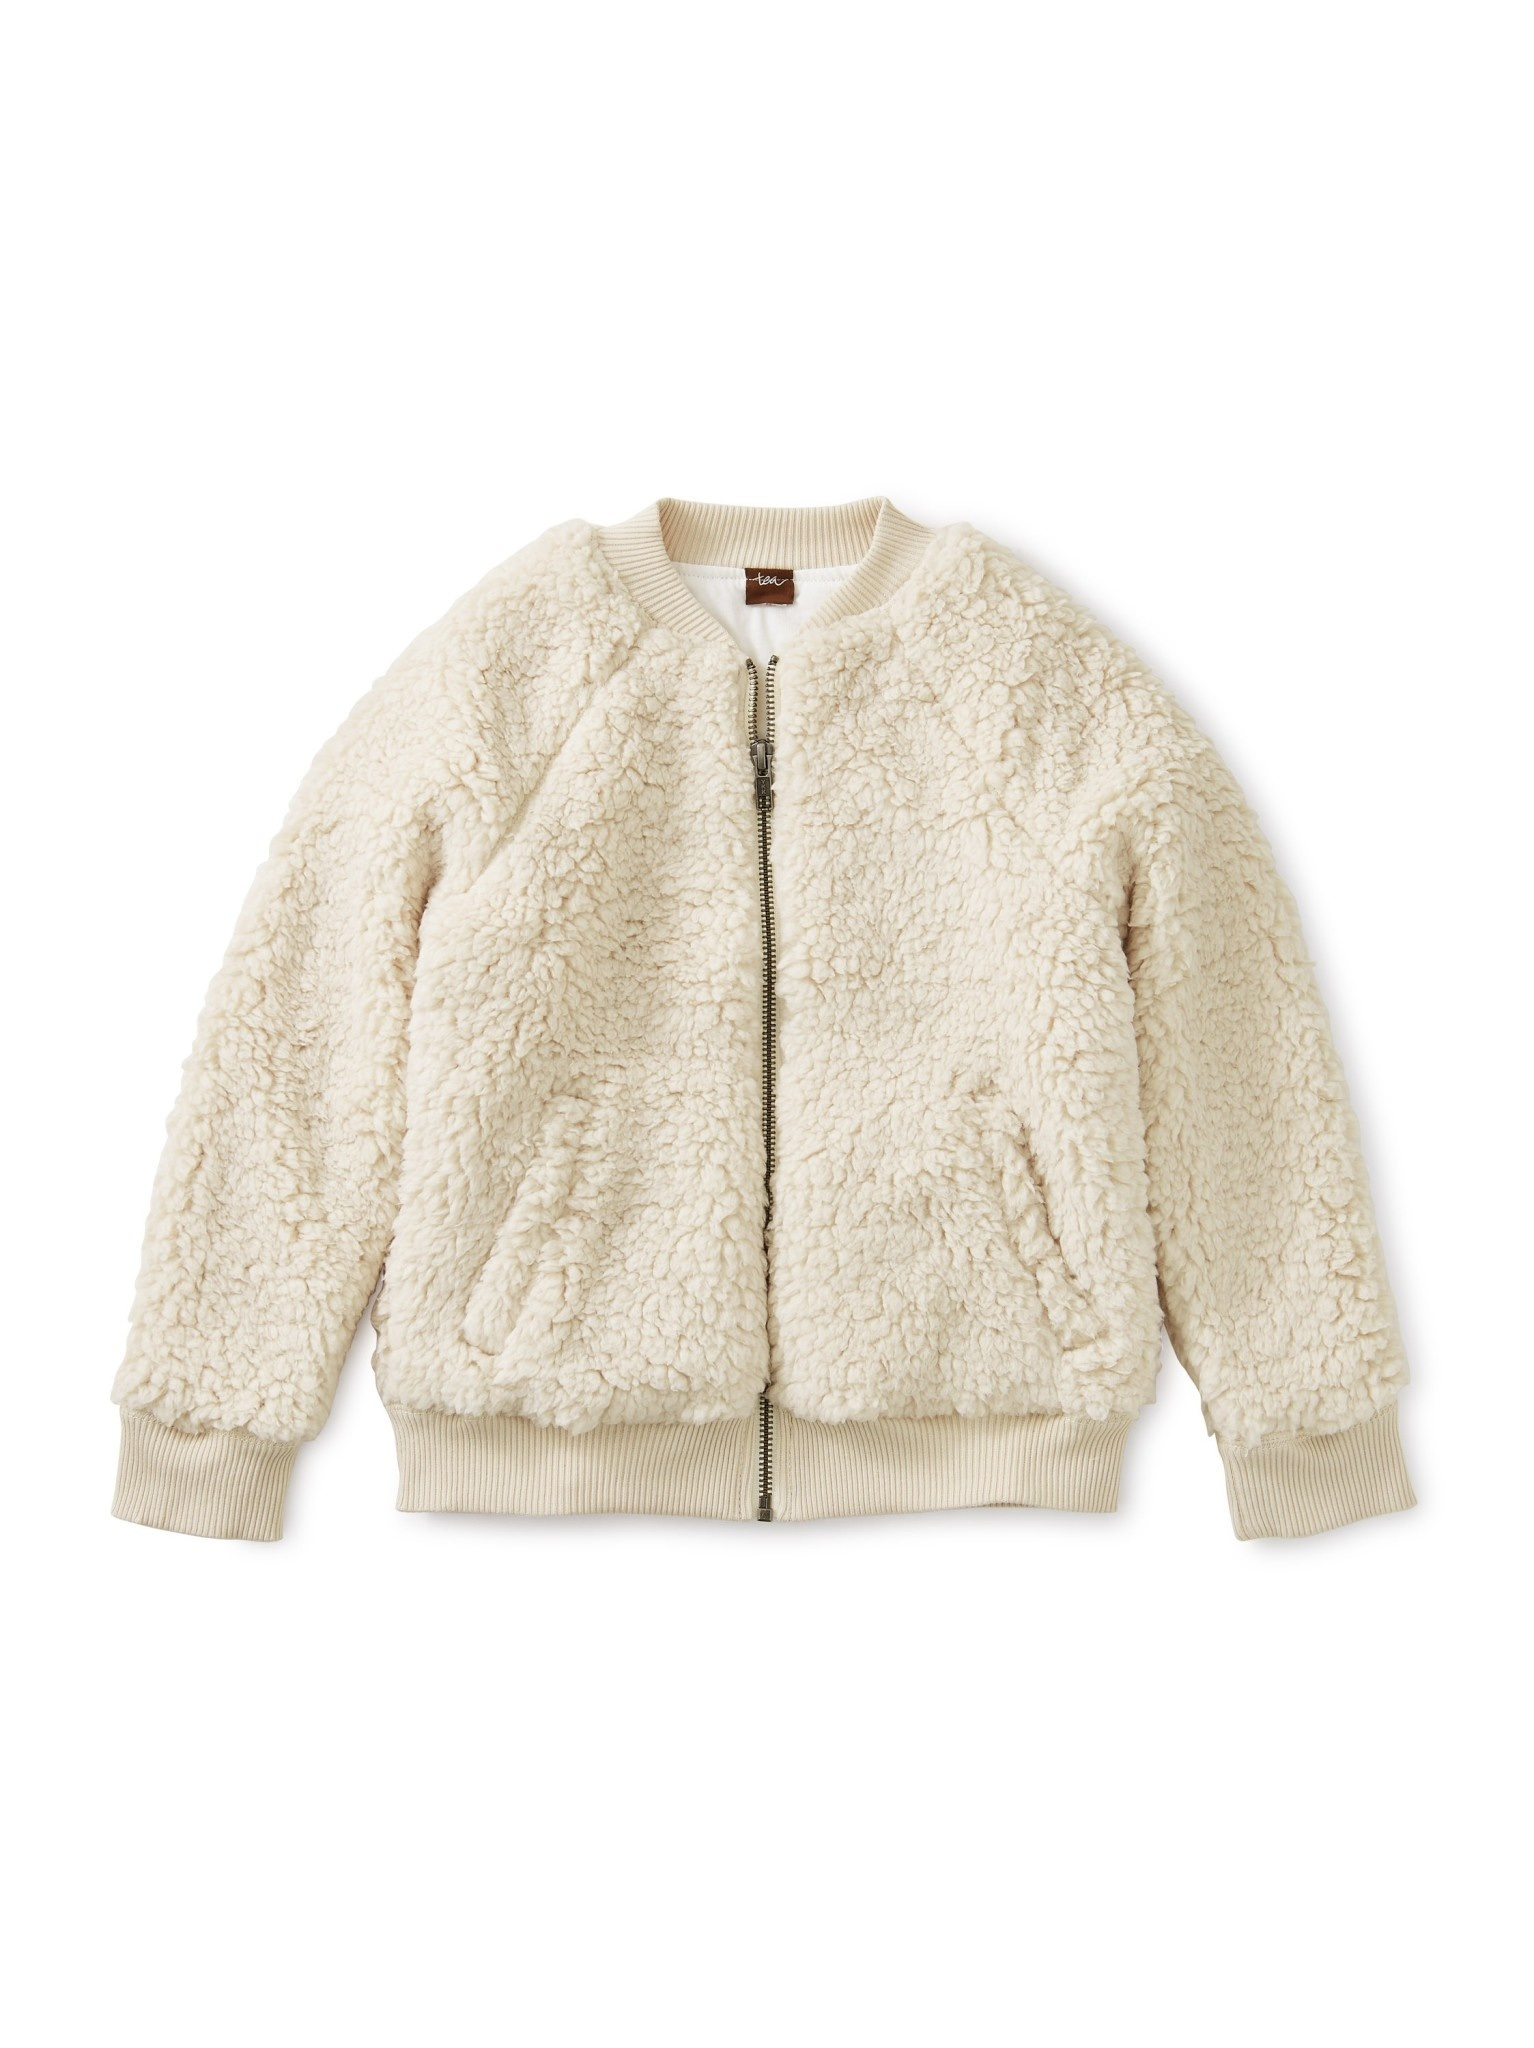 Tea Collection Sherpa Fleece Bomber Jacket 3T